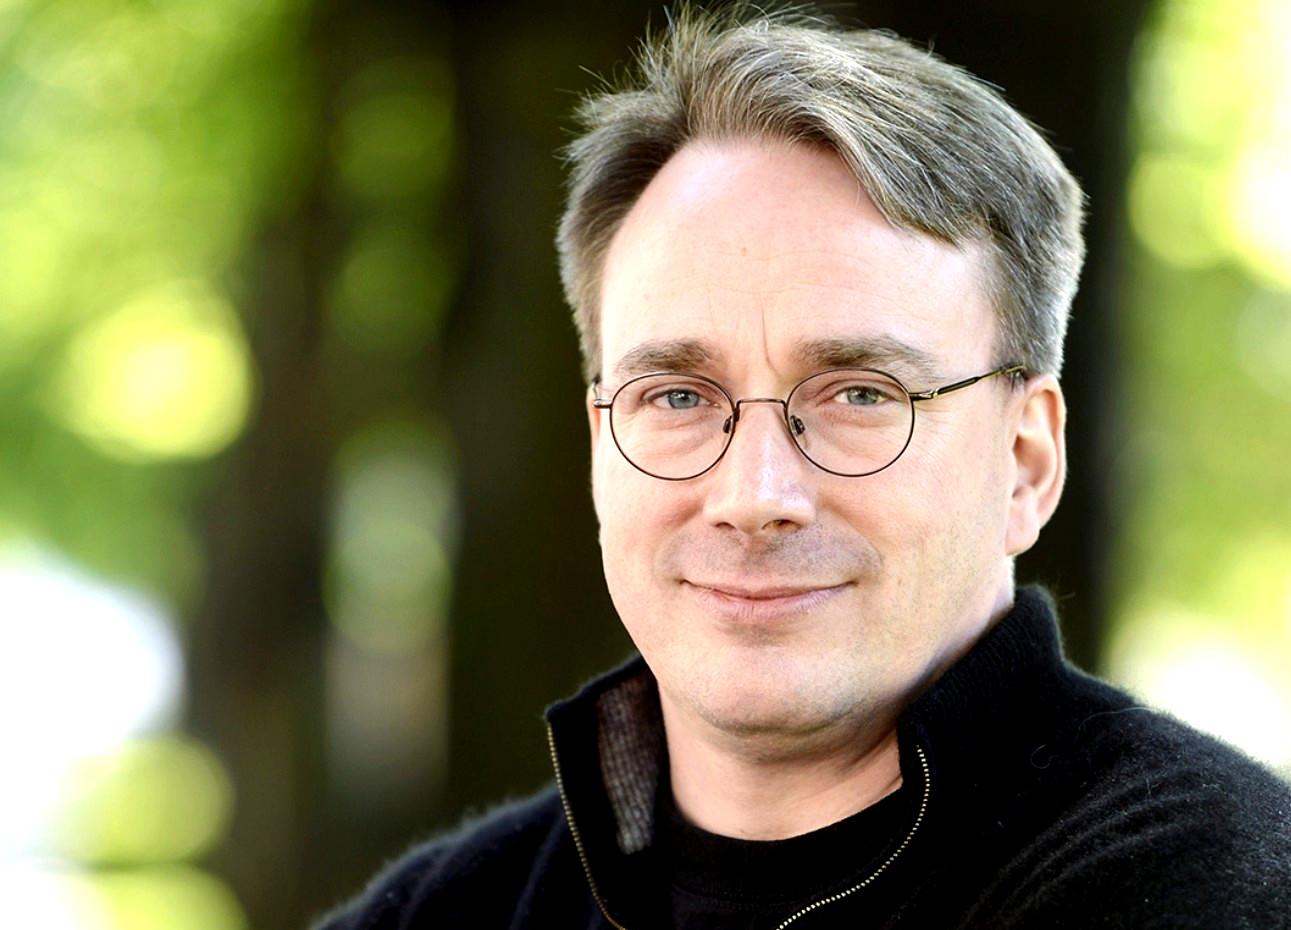 Linus Torvalds criticized the L1 cache reset function when context switching – Linus all programming languages suck except C – kernel got names